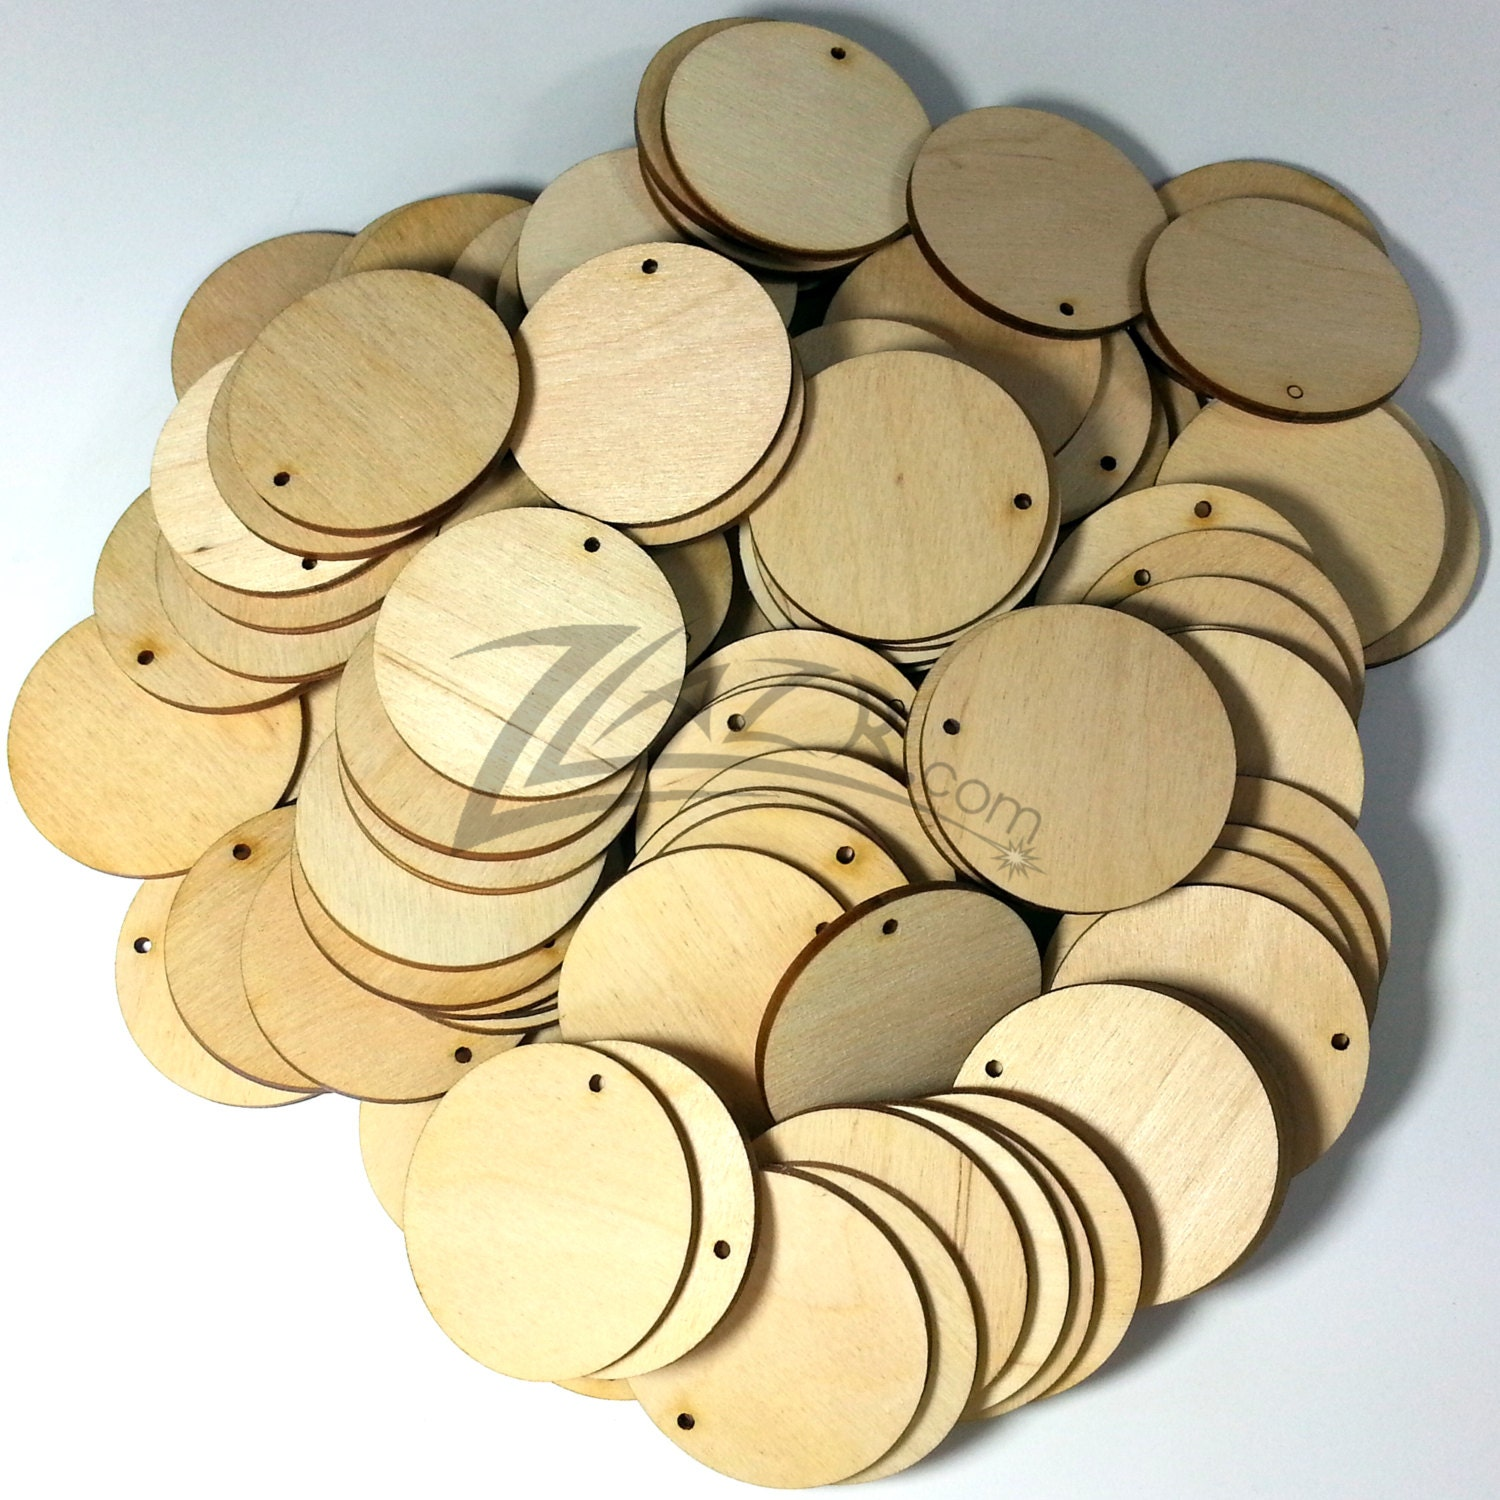 100 wood circles 1 5 x 1 8 1 key chain hole craft for Wood circles for crafts